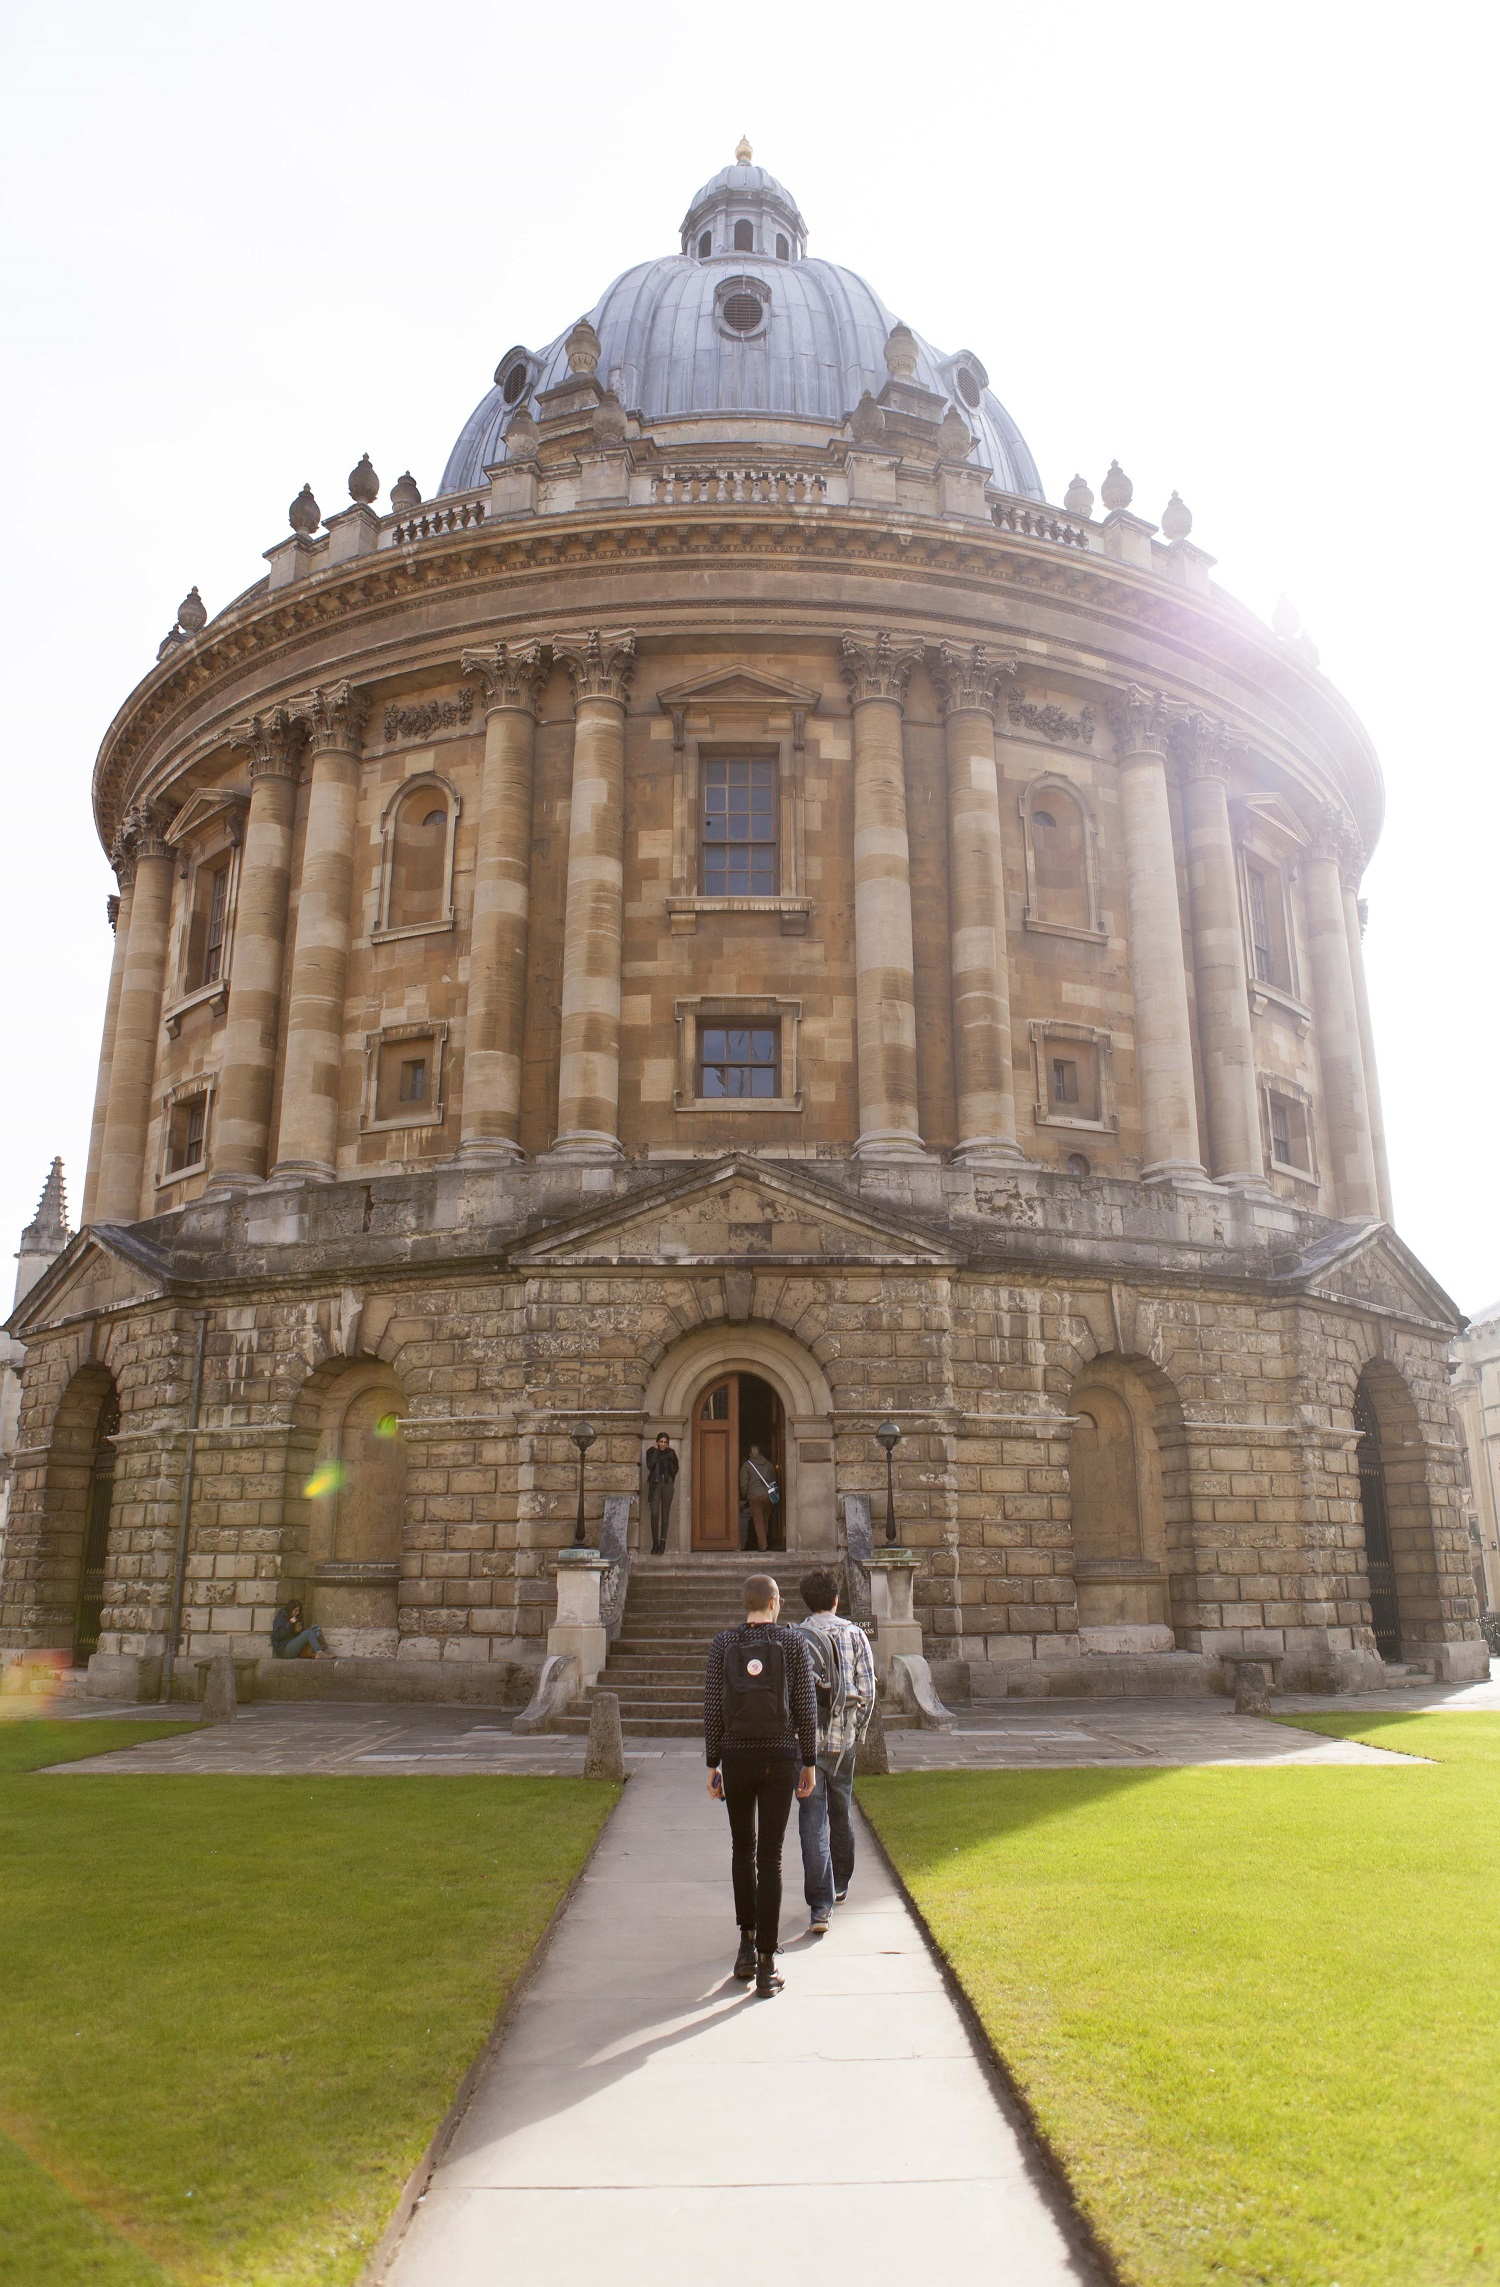 Students learning English in Oxford visit Radcliffe Camera